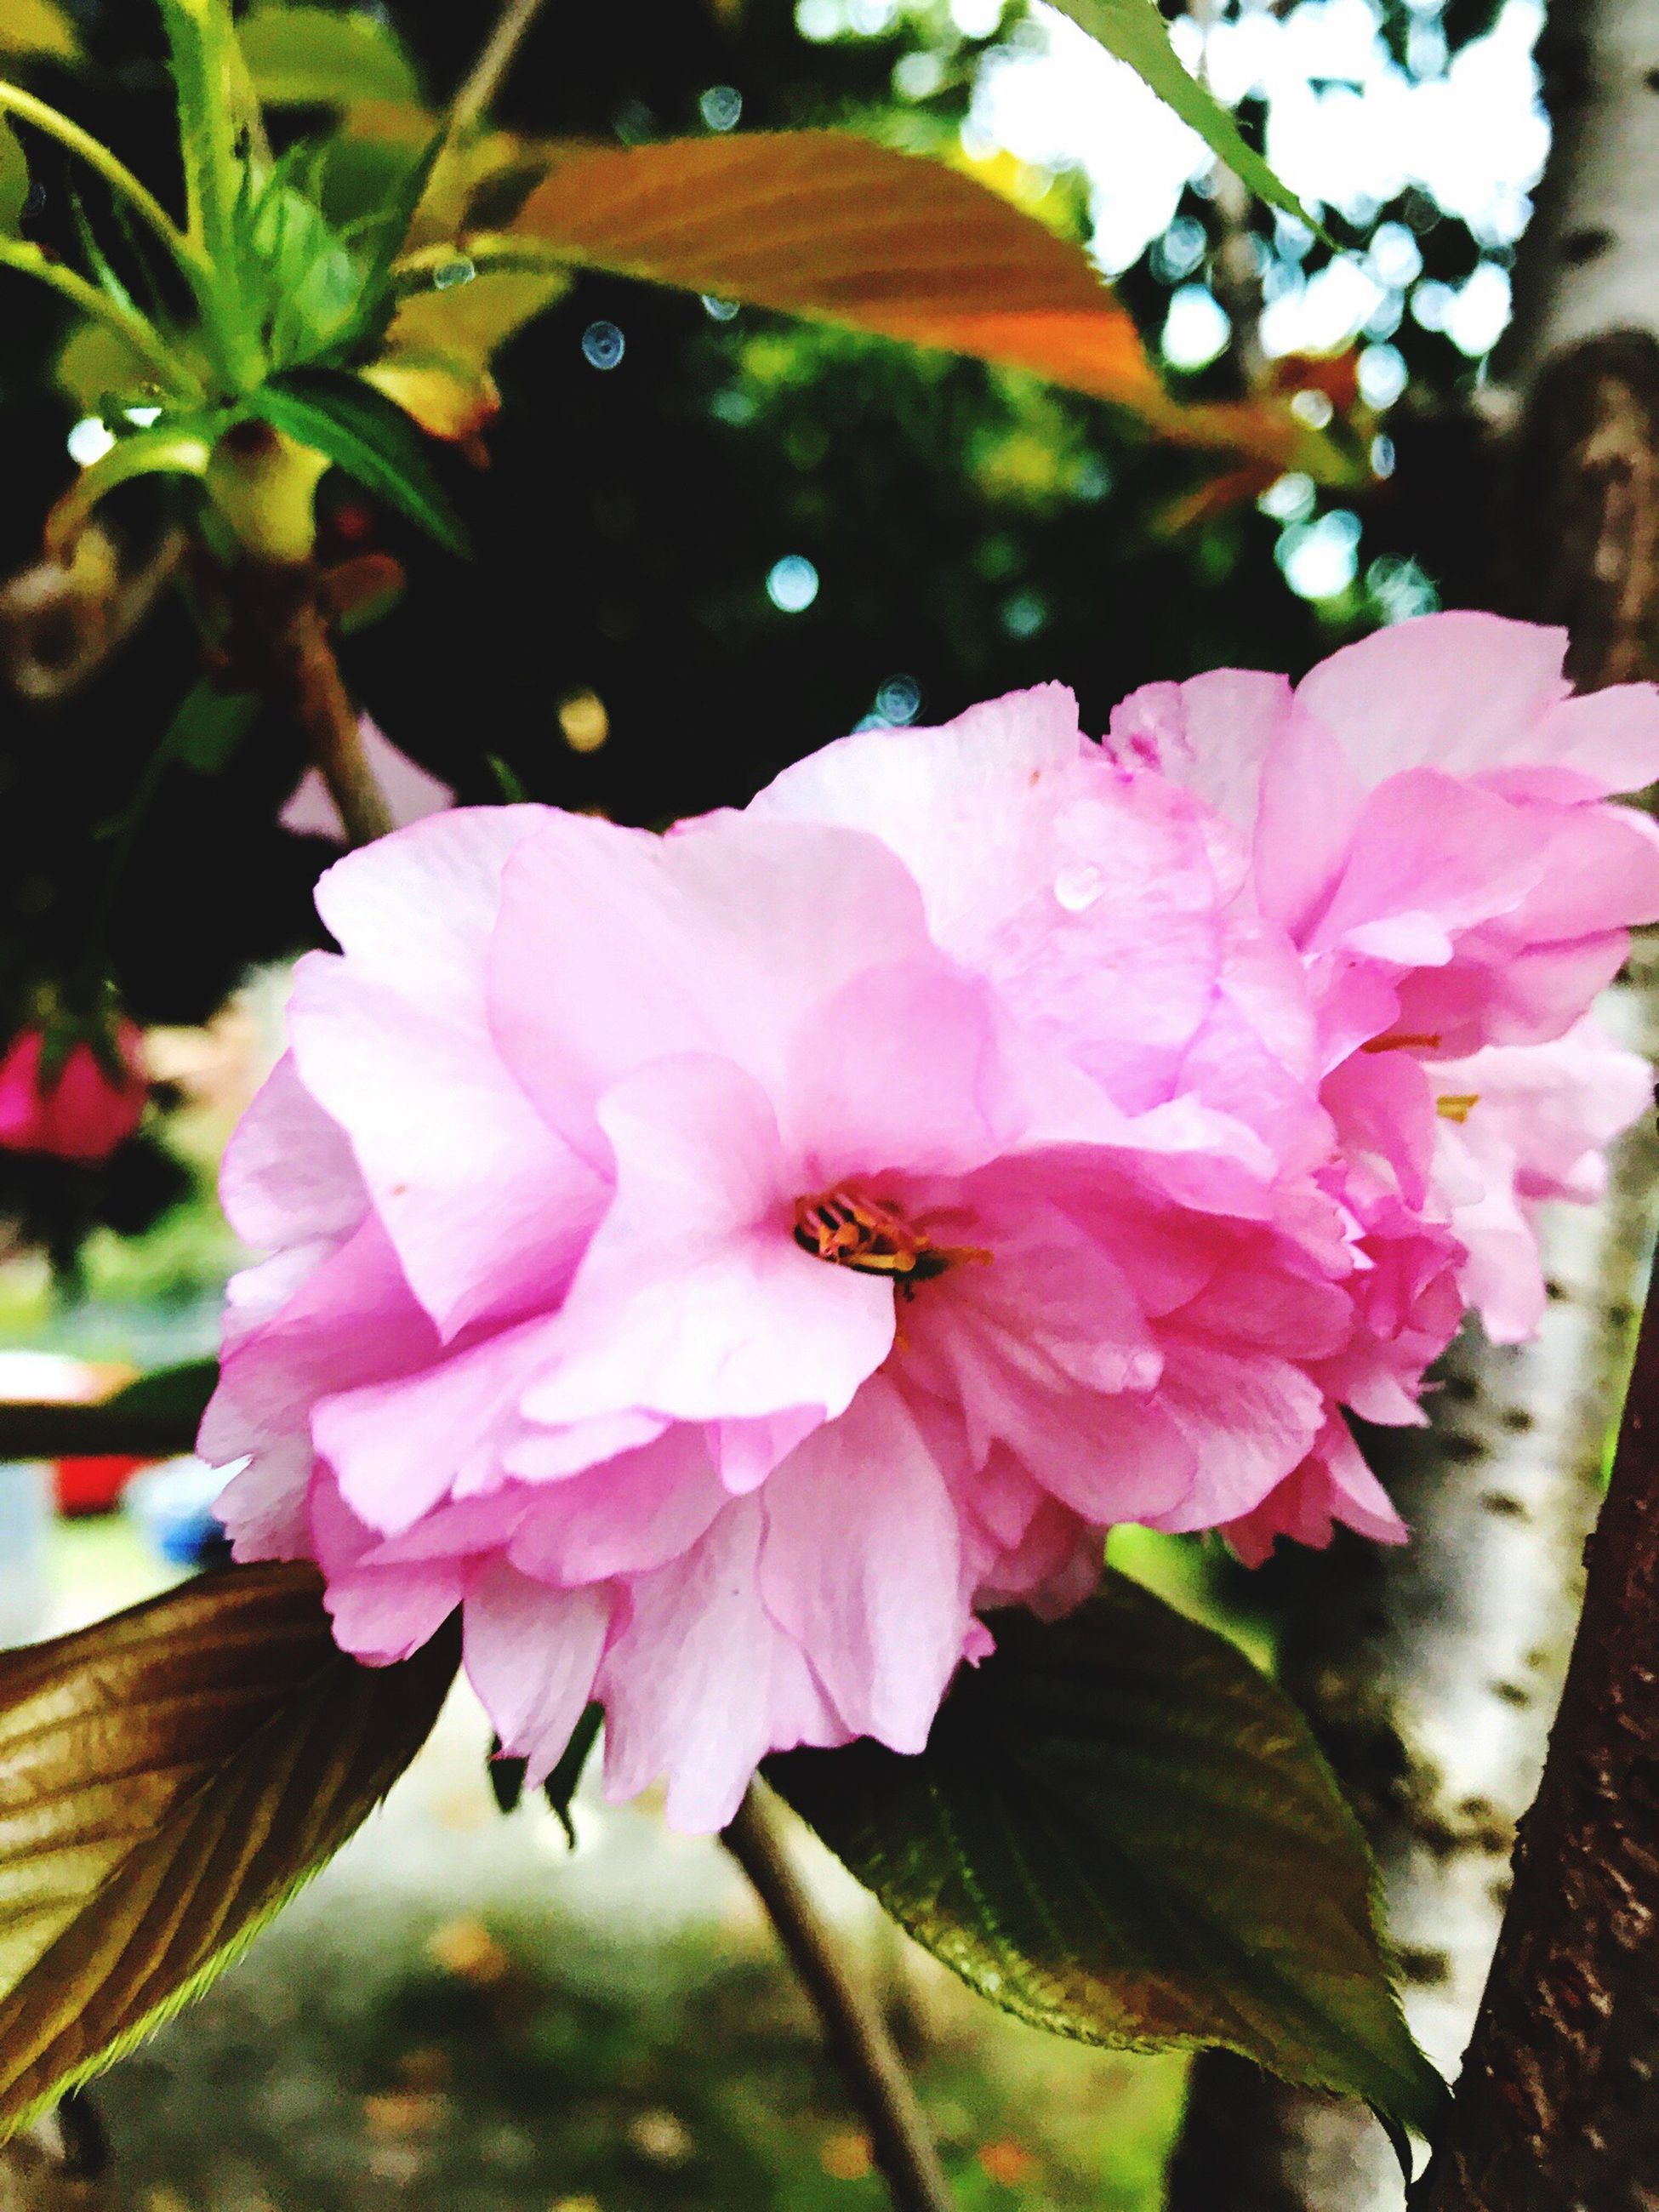 flower, fragility, freshness, nature, beauty in nature, growth, petal, flower head, close-up, blooming, pink color, leaf, plant, no people, outdoors, day, water